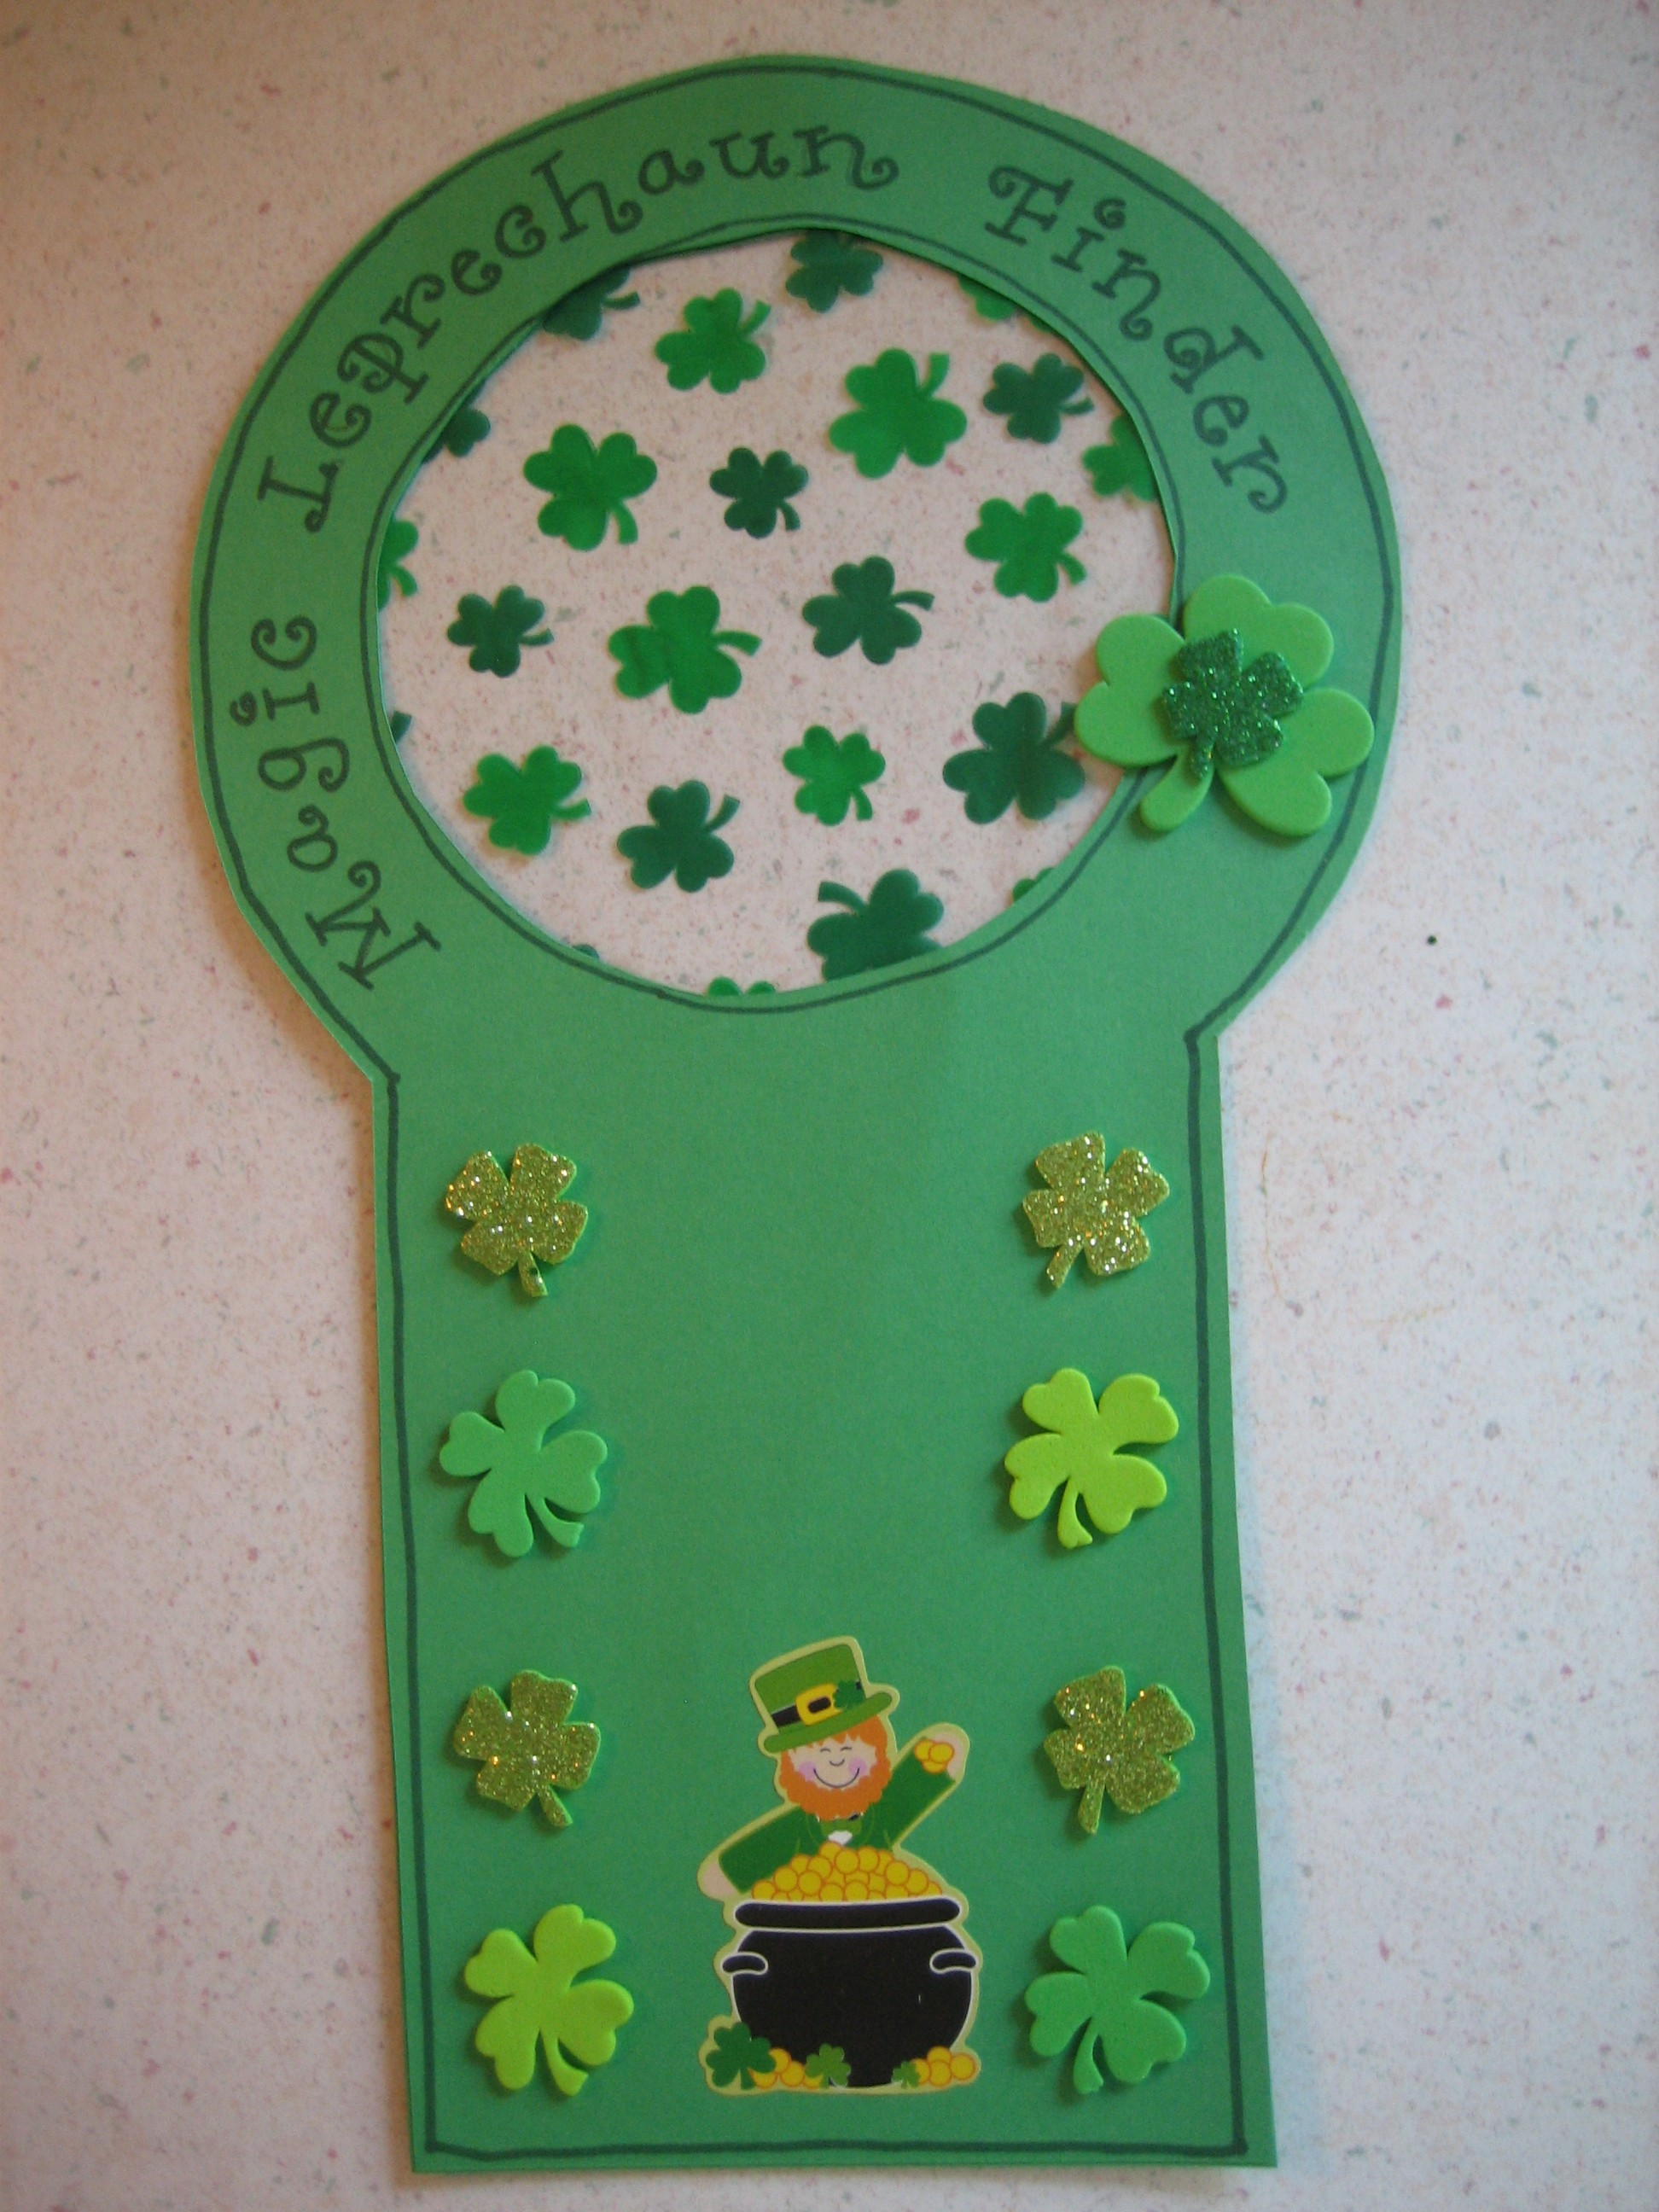 St patricks day preschool crafts - St Patricks Day Preschool Crafts 49